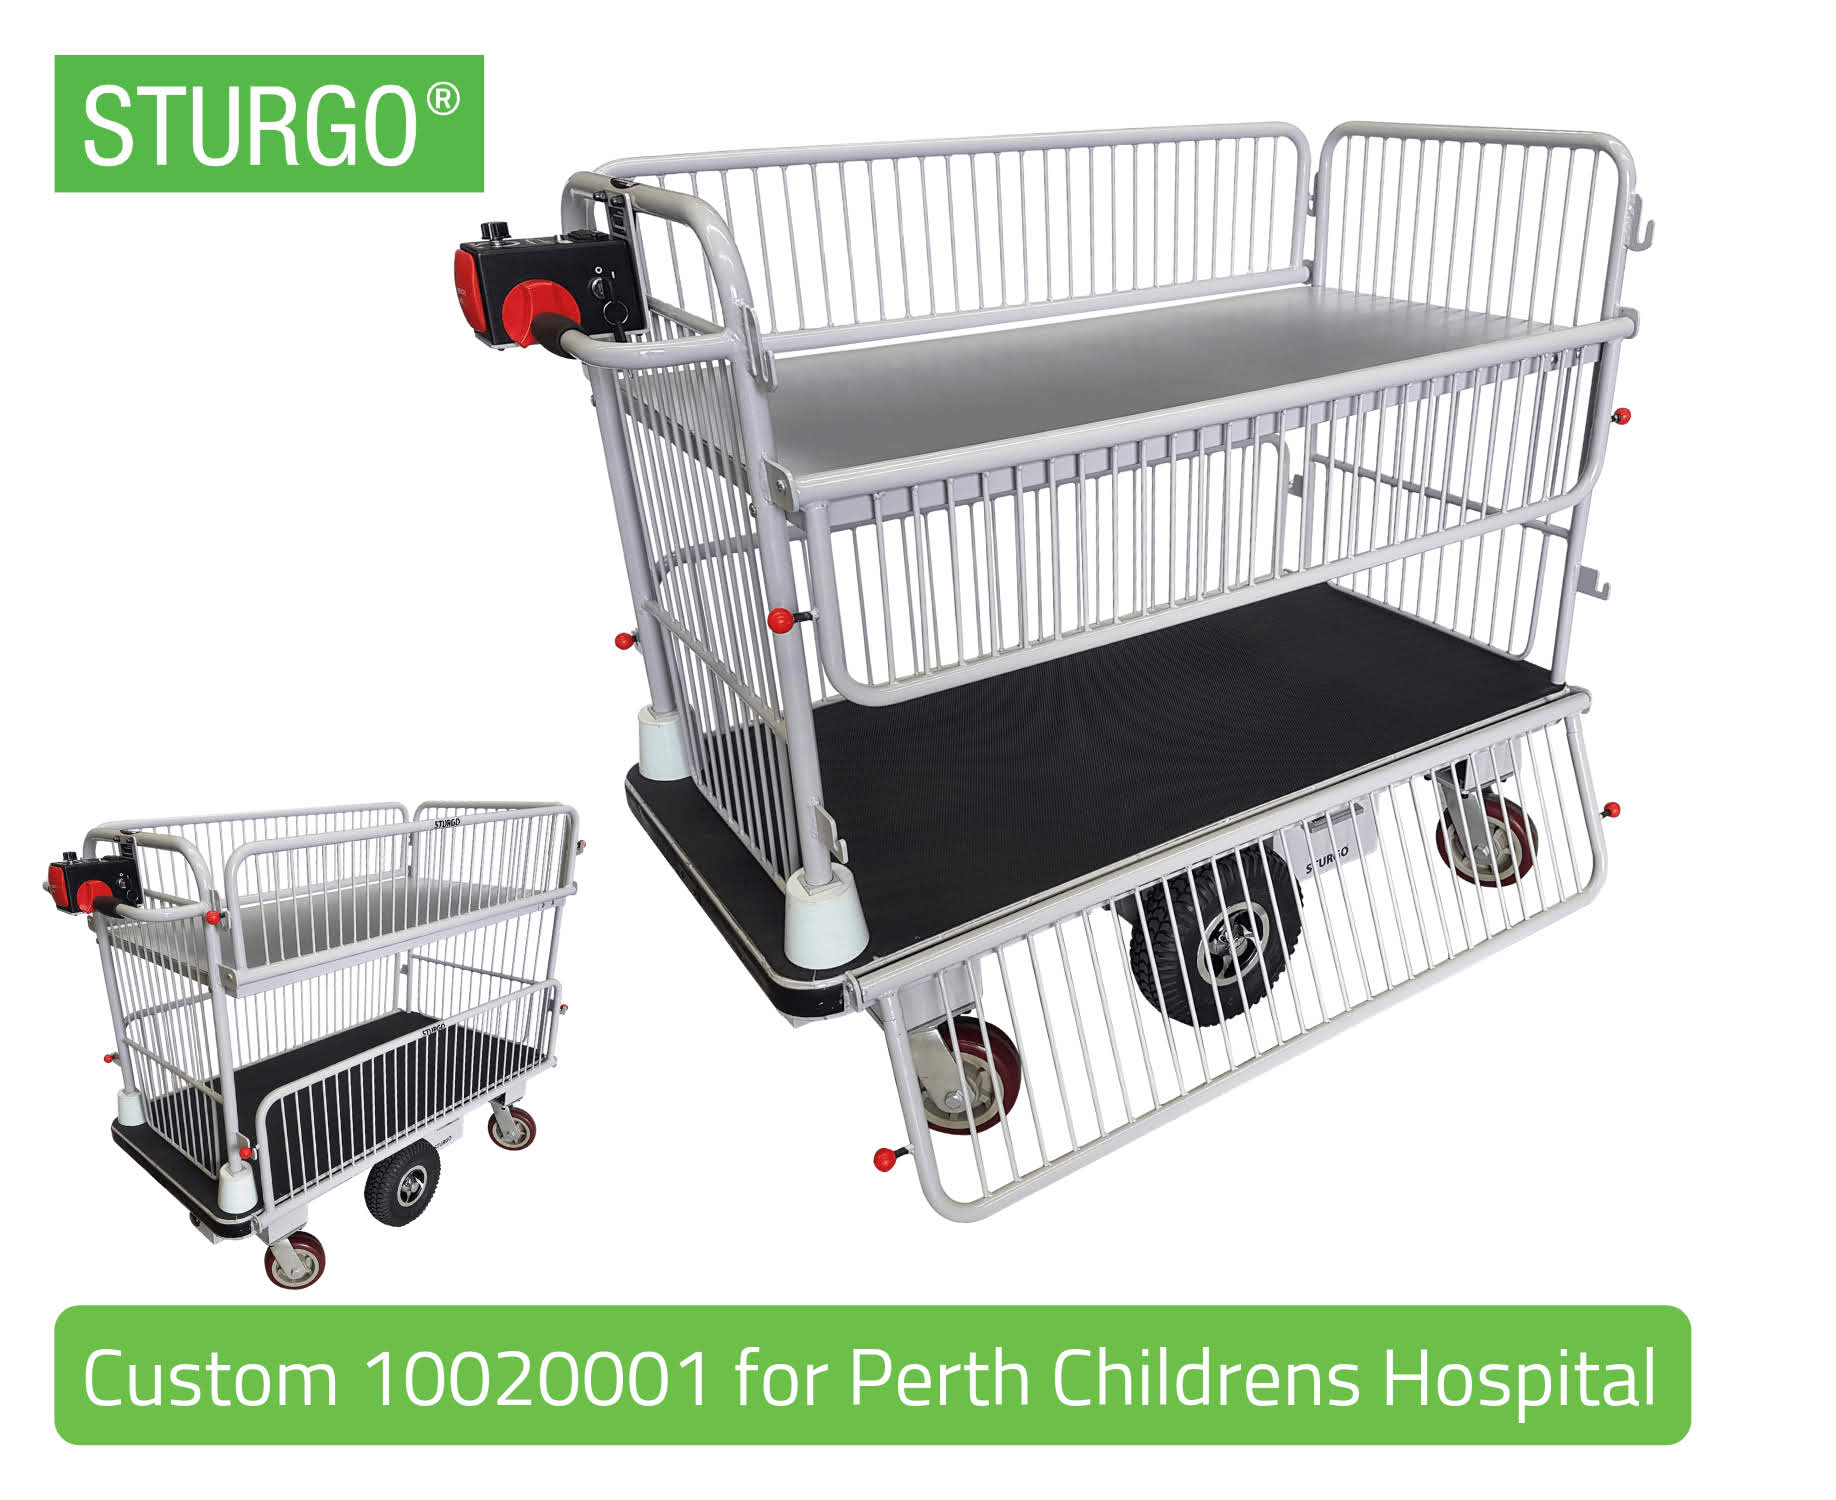 STURGO® Electric Platform Trolley with Centre Drive